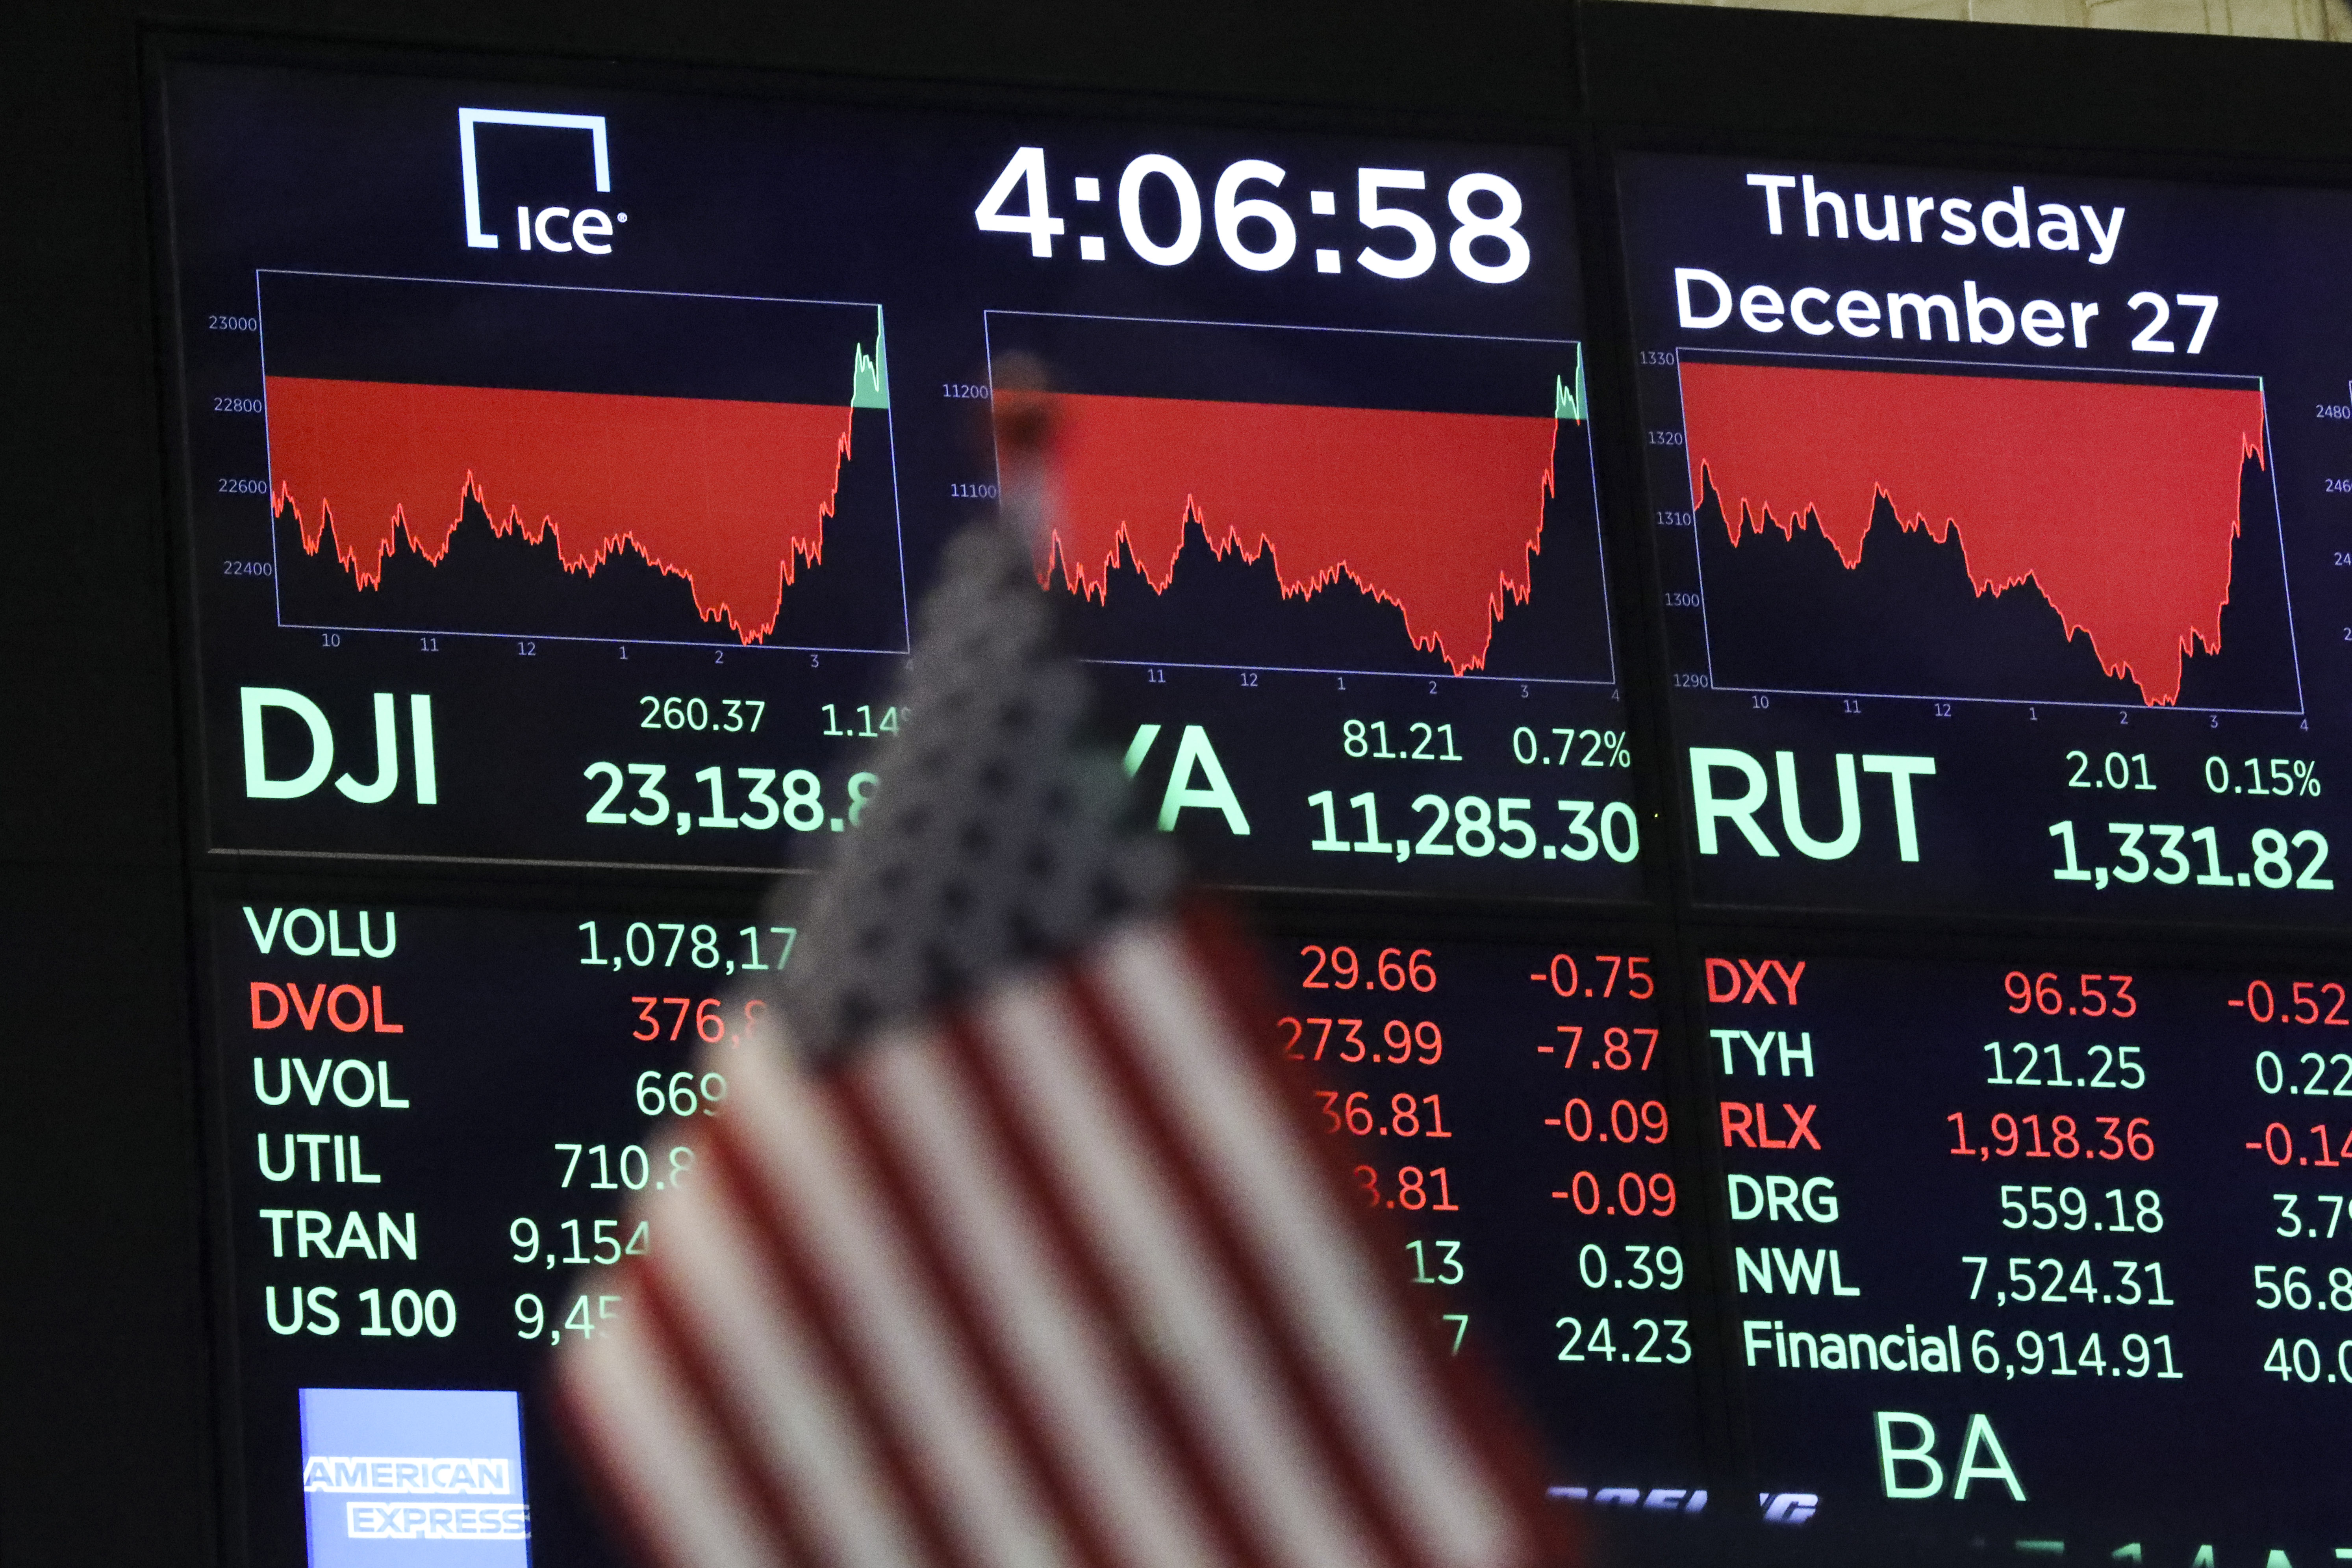 A monitor displays the day's final numbers after the closing bell on the floor of  the New York Stock Exchange (NYSE), December 27, 2018 in New York City. After falling over 600 points earlier in the trading session, the Dow Jones Industrial Average ended the day up 260 points.